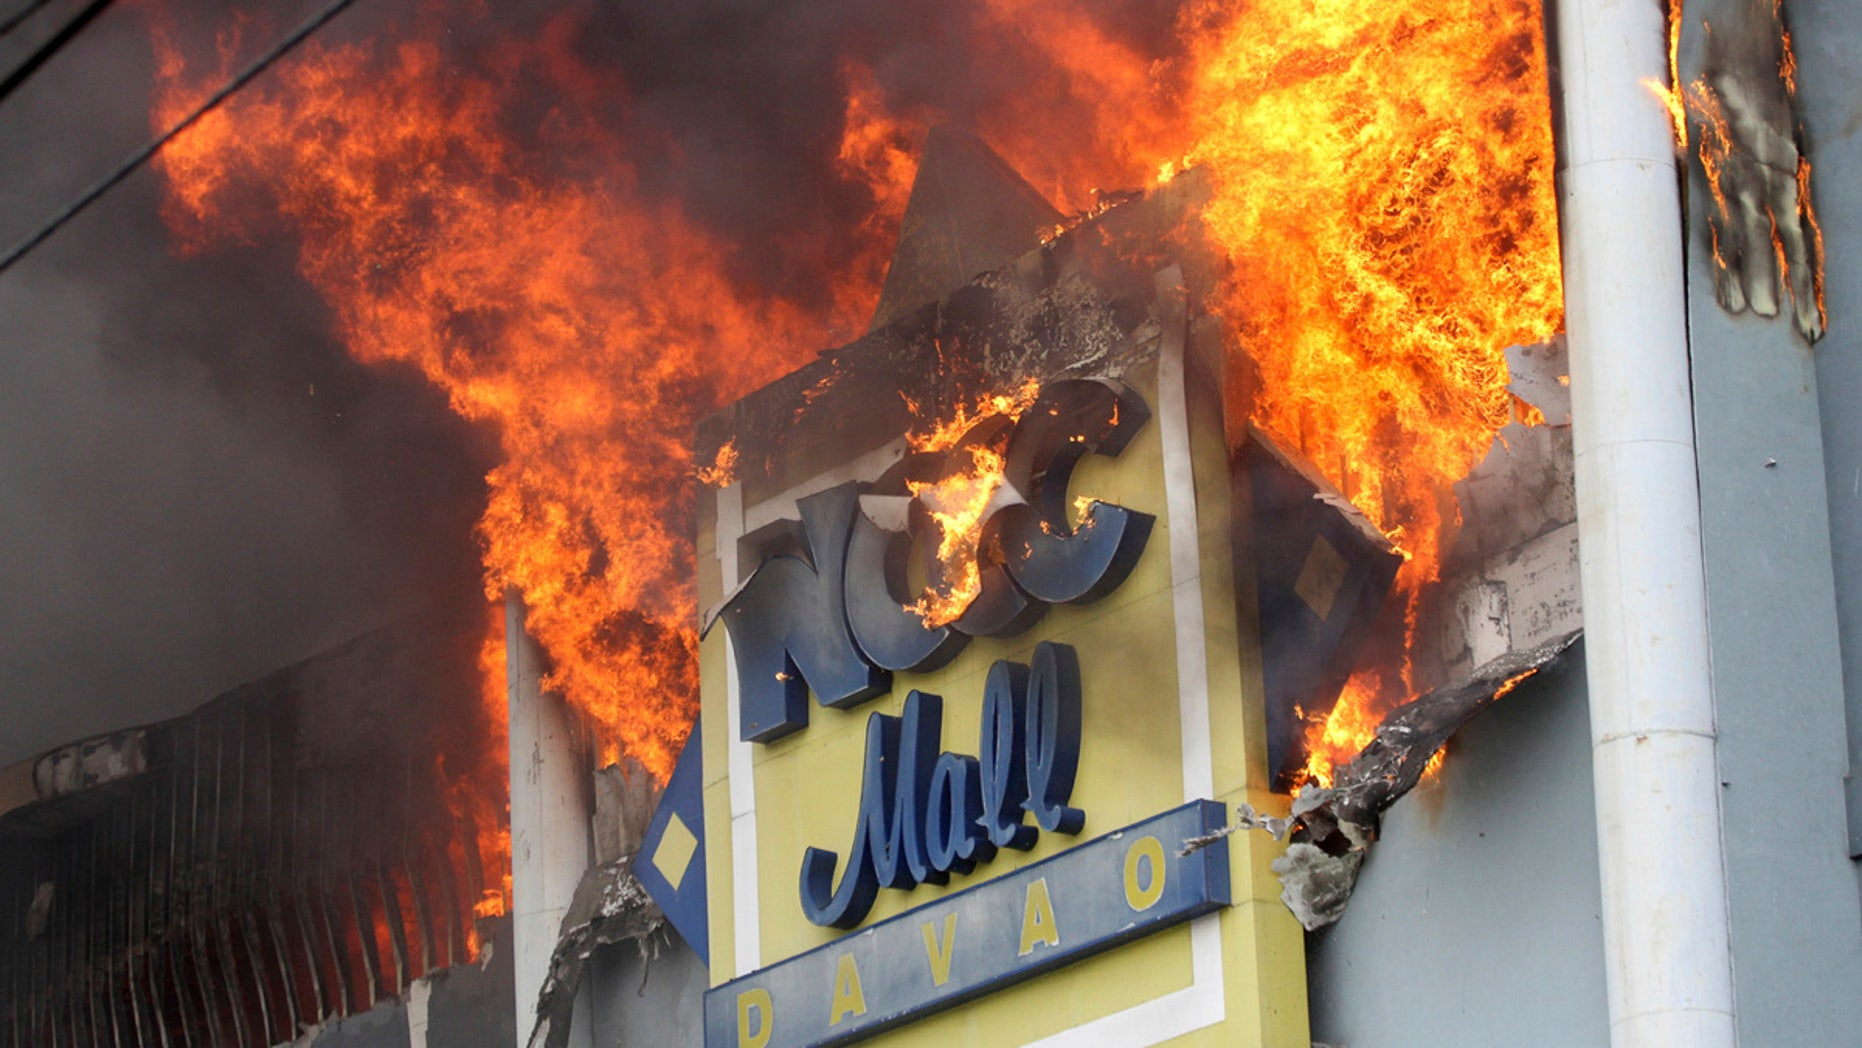 A fire rages on at a shopping mall Saturday, Dec. 23, 2017, Davao city, southern Philippines.